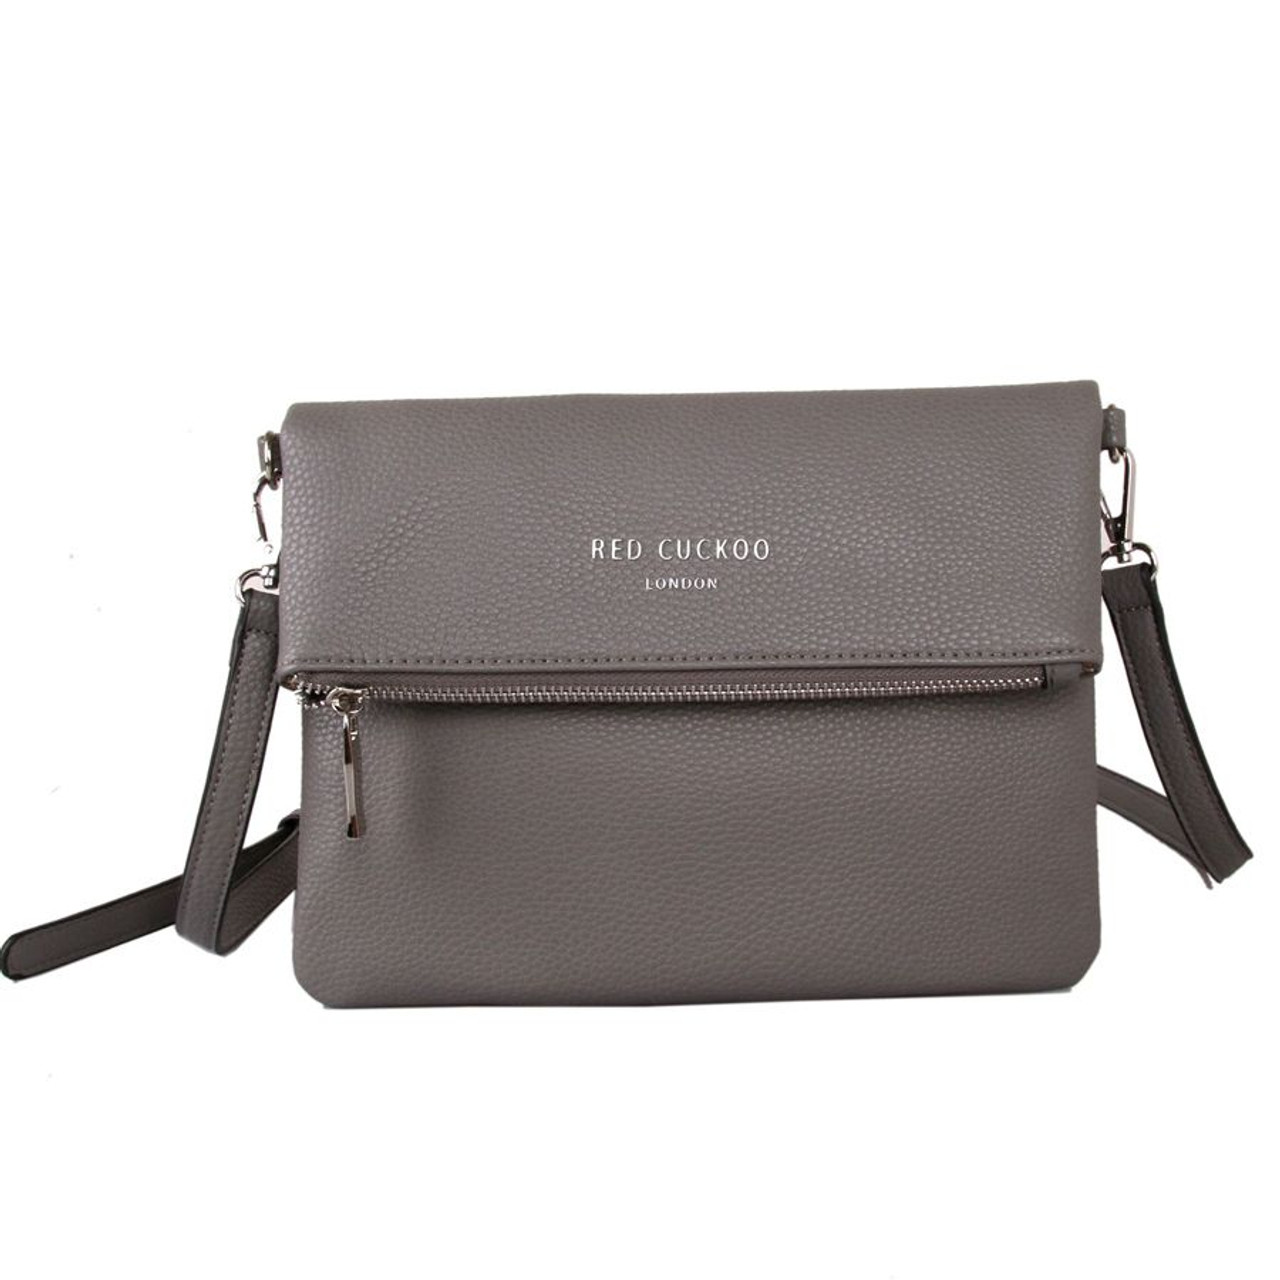 c8c2a3e38c84 Red Cuckoo Grey Cross-Body Bag - Itsy Bitsy Boutique